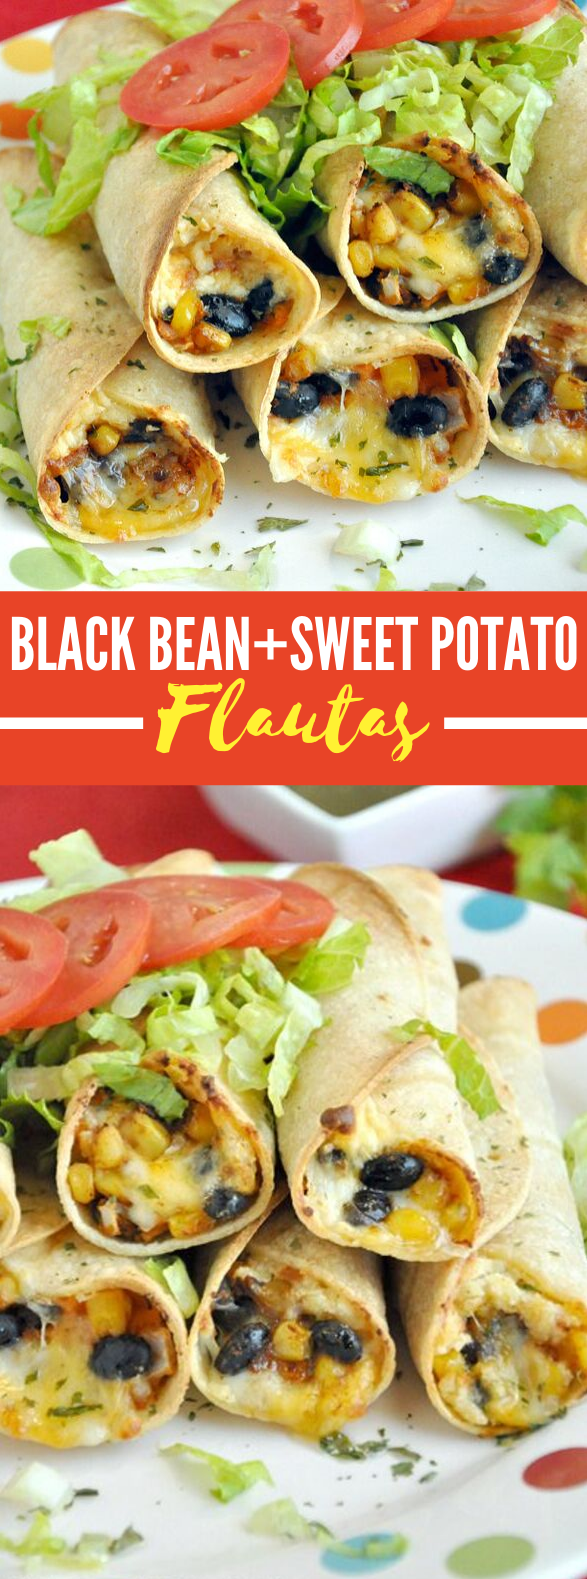 BAKED BLACK BEAN AND SWEET POTATO FLAUTAS #vegetarian #appetizers